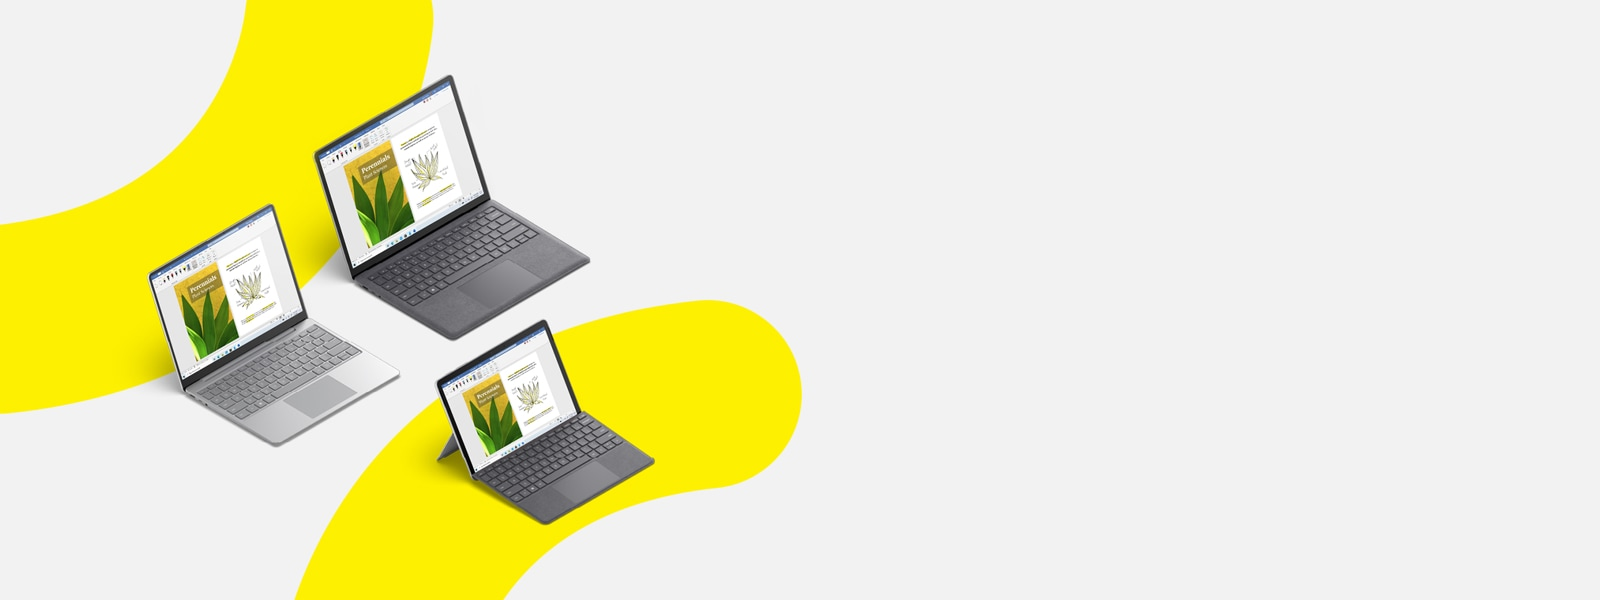 Surface devices and accessories